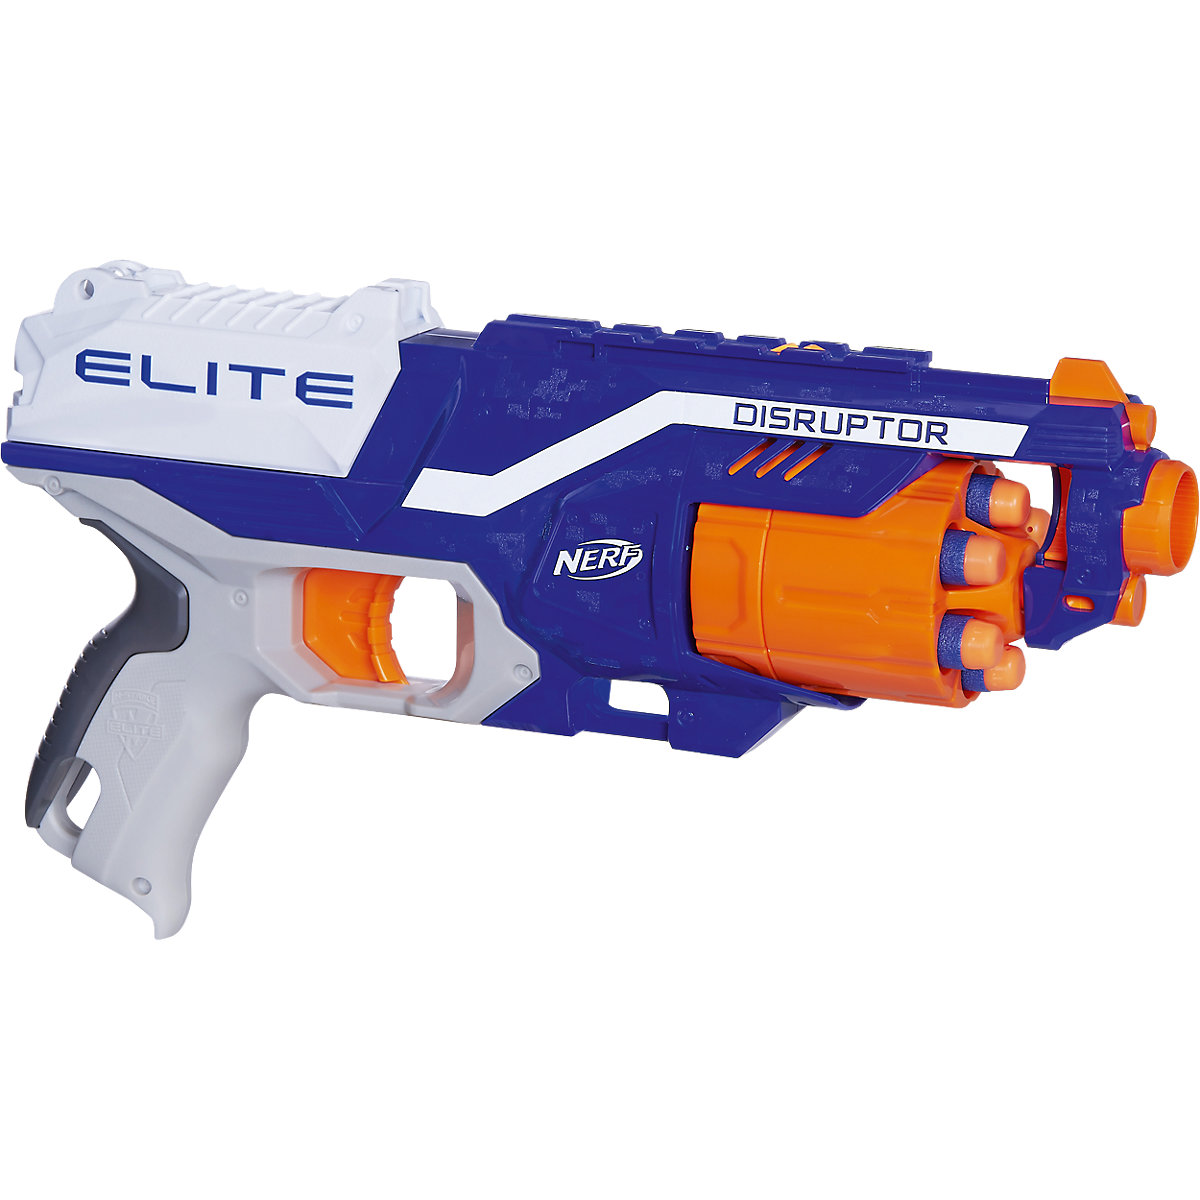 Toy Guns NERF 5104315 Children Kids Toy Gun Weapon Blasters Boys Shooting games Outdoor play children play house toy